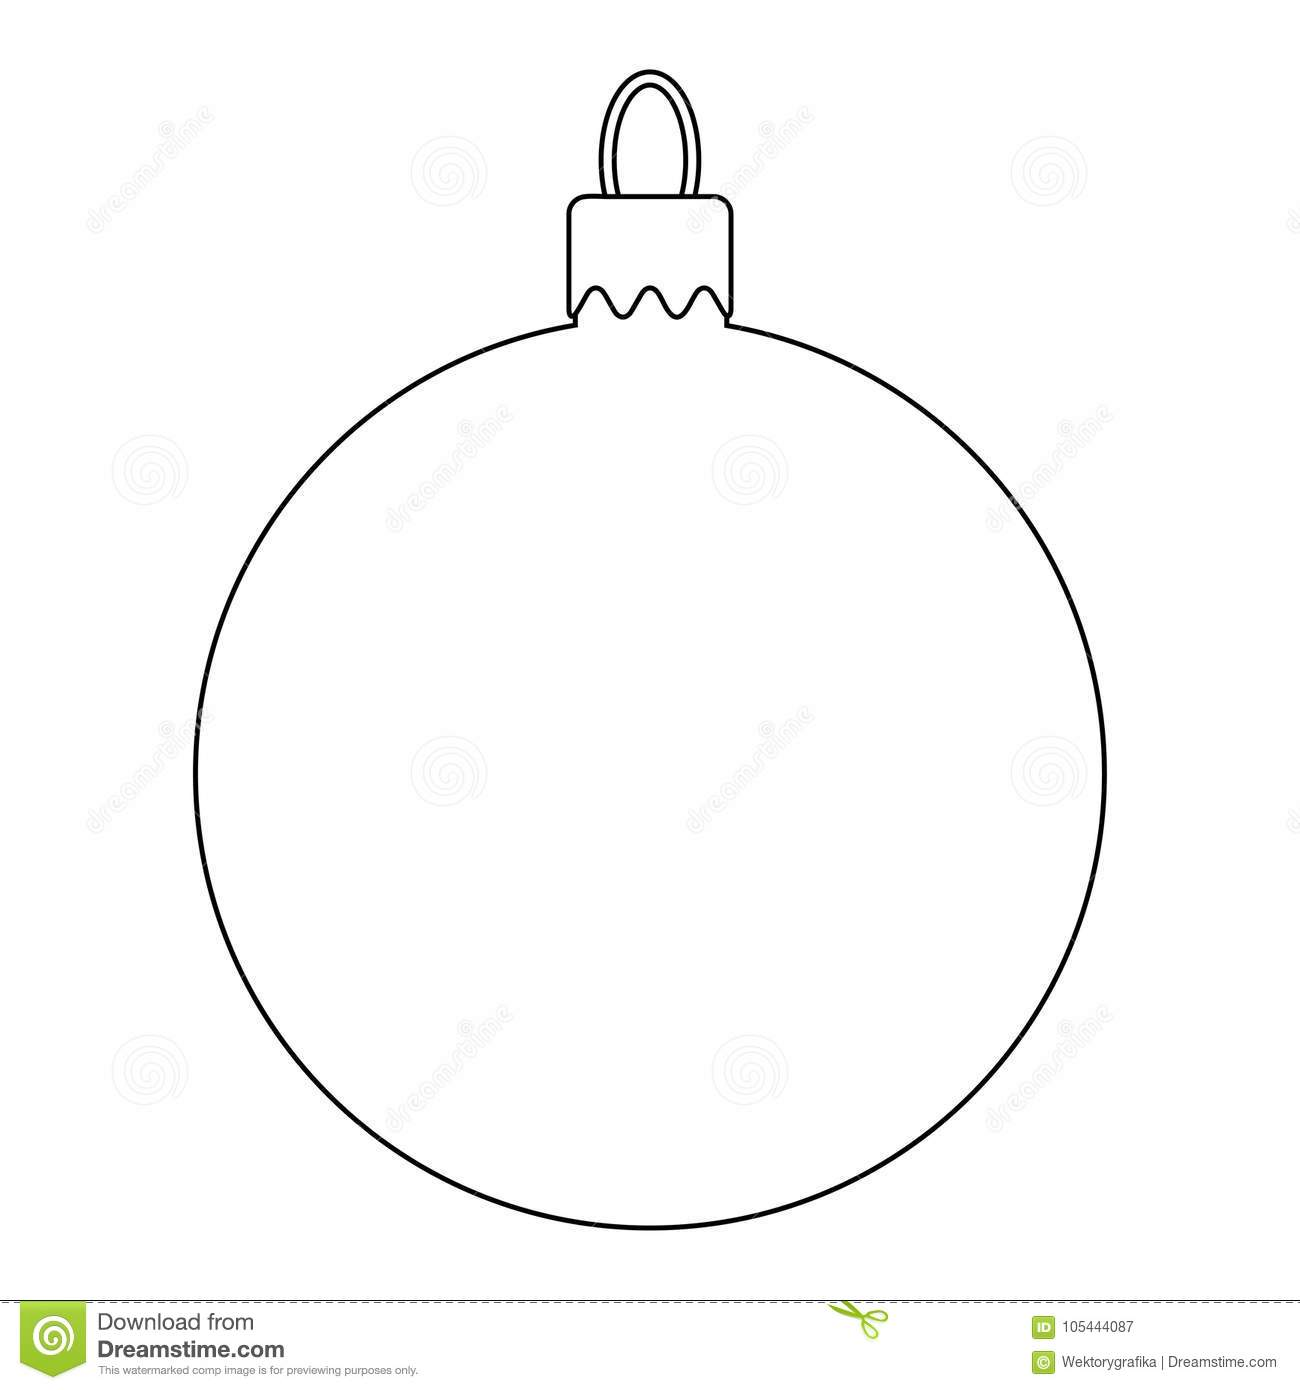 Simple Bauble Outline For Christmas Tree Isolated On White